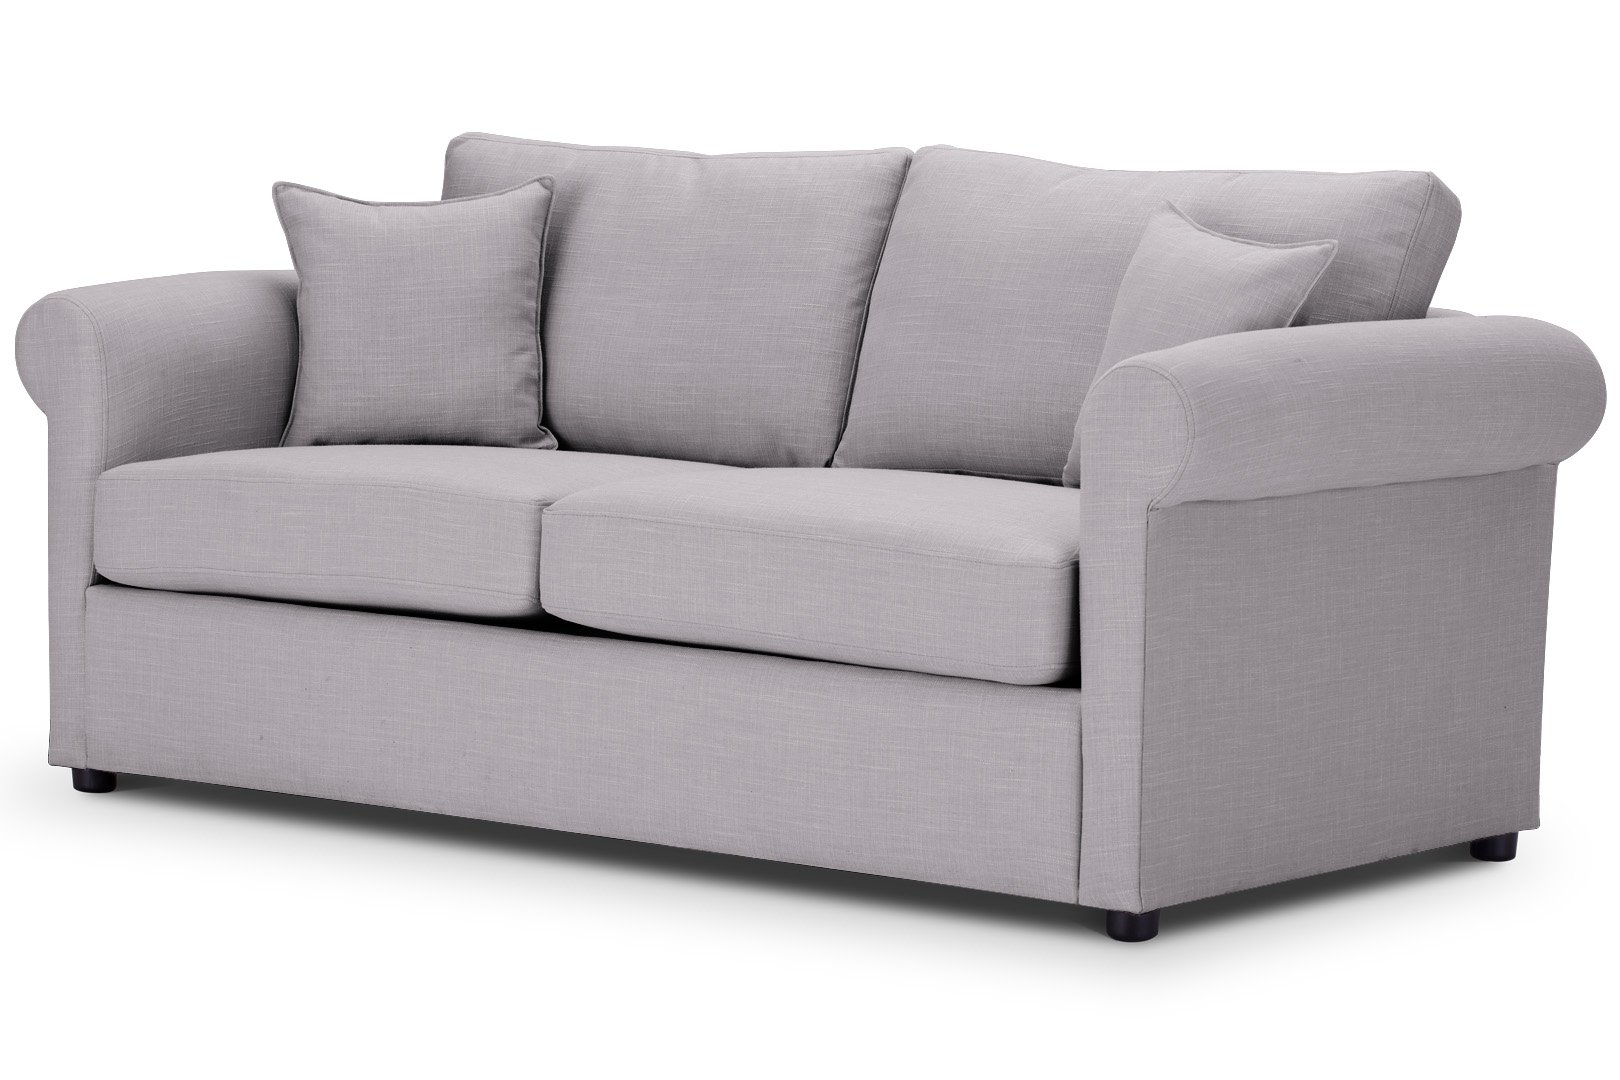 London Sofa-Bed-Rounded-arms-in-Emporio-SILVER-Fabric-Emp517